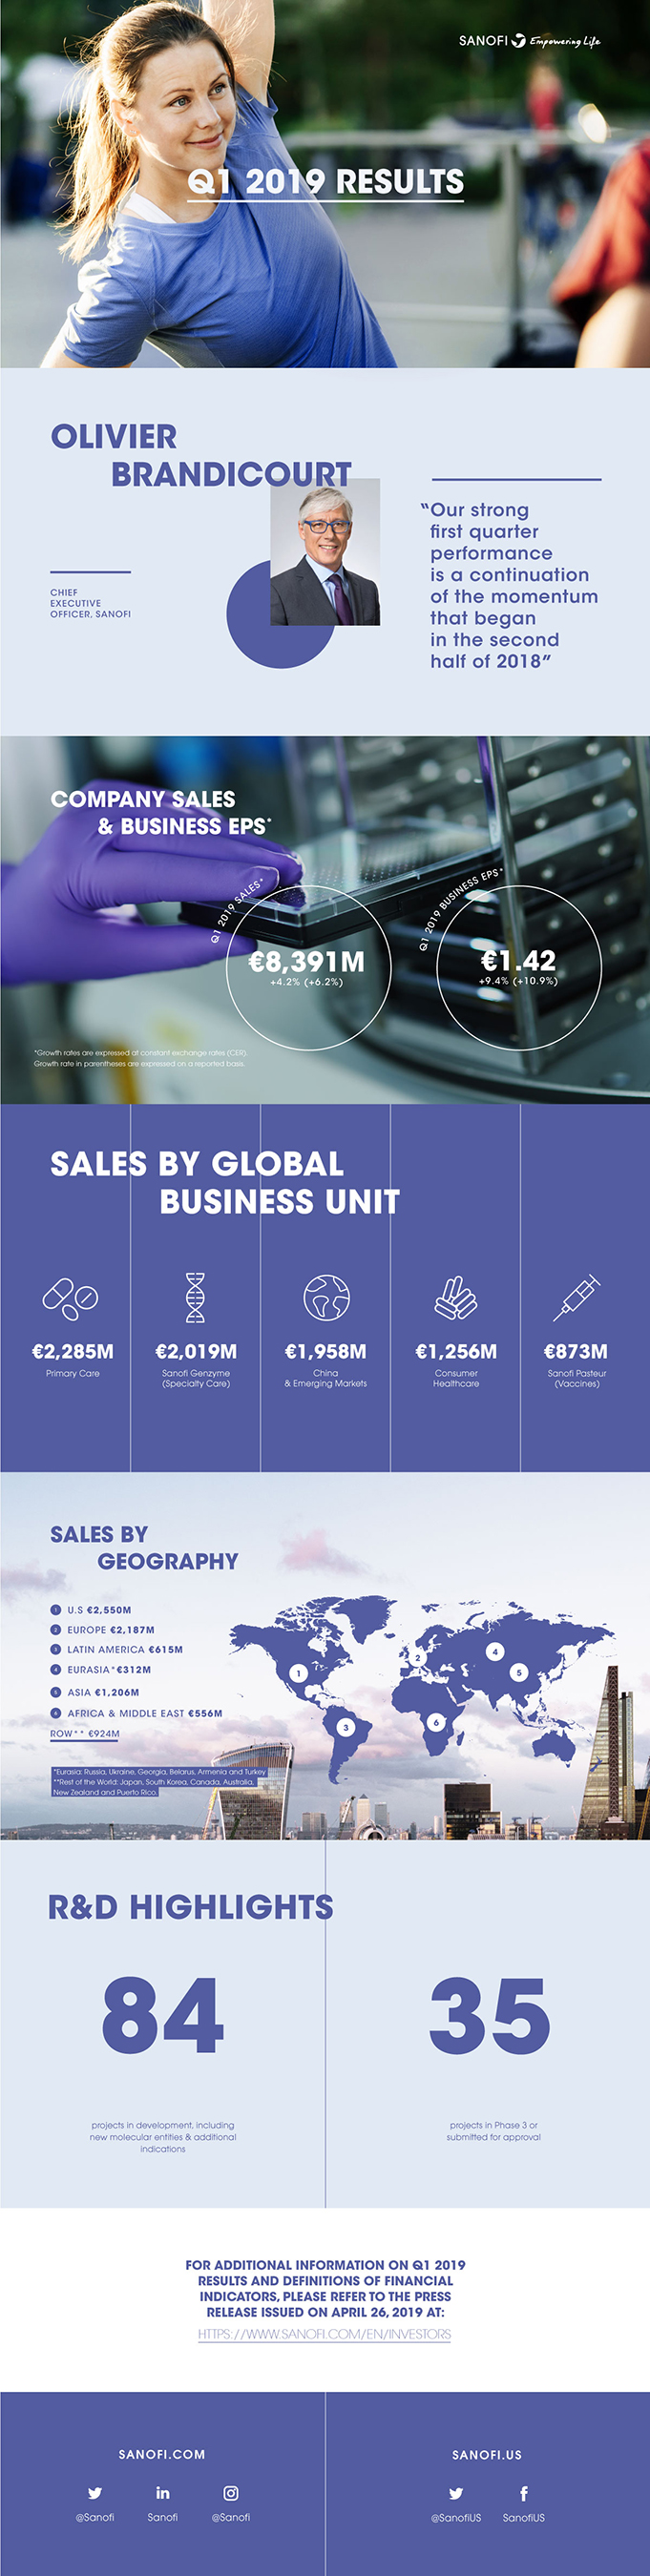 Sanofi 2019 Q1 Earnings Results Infographic